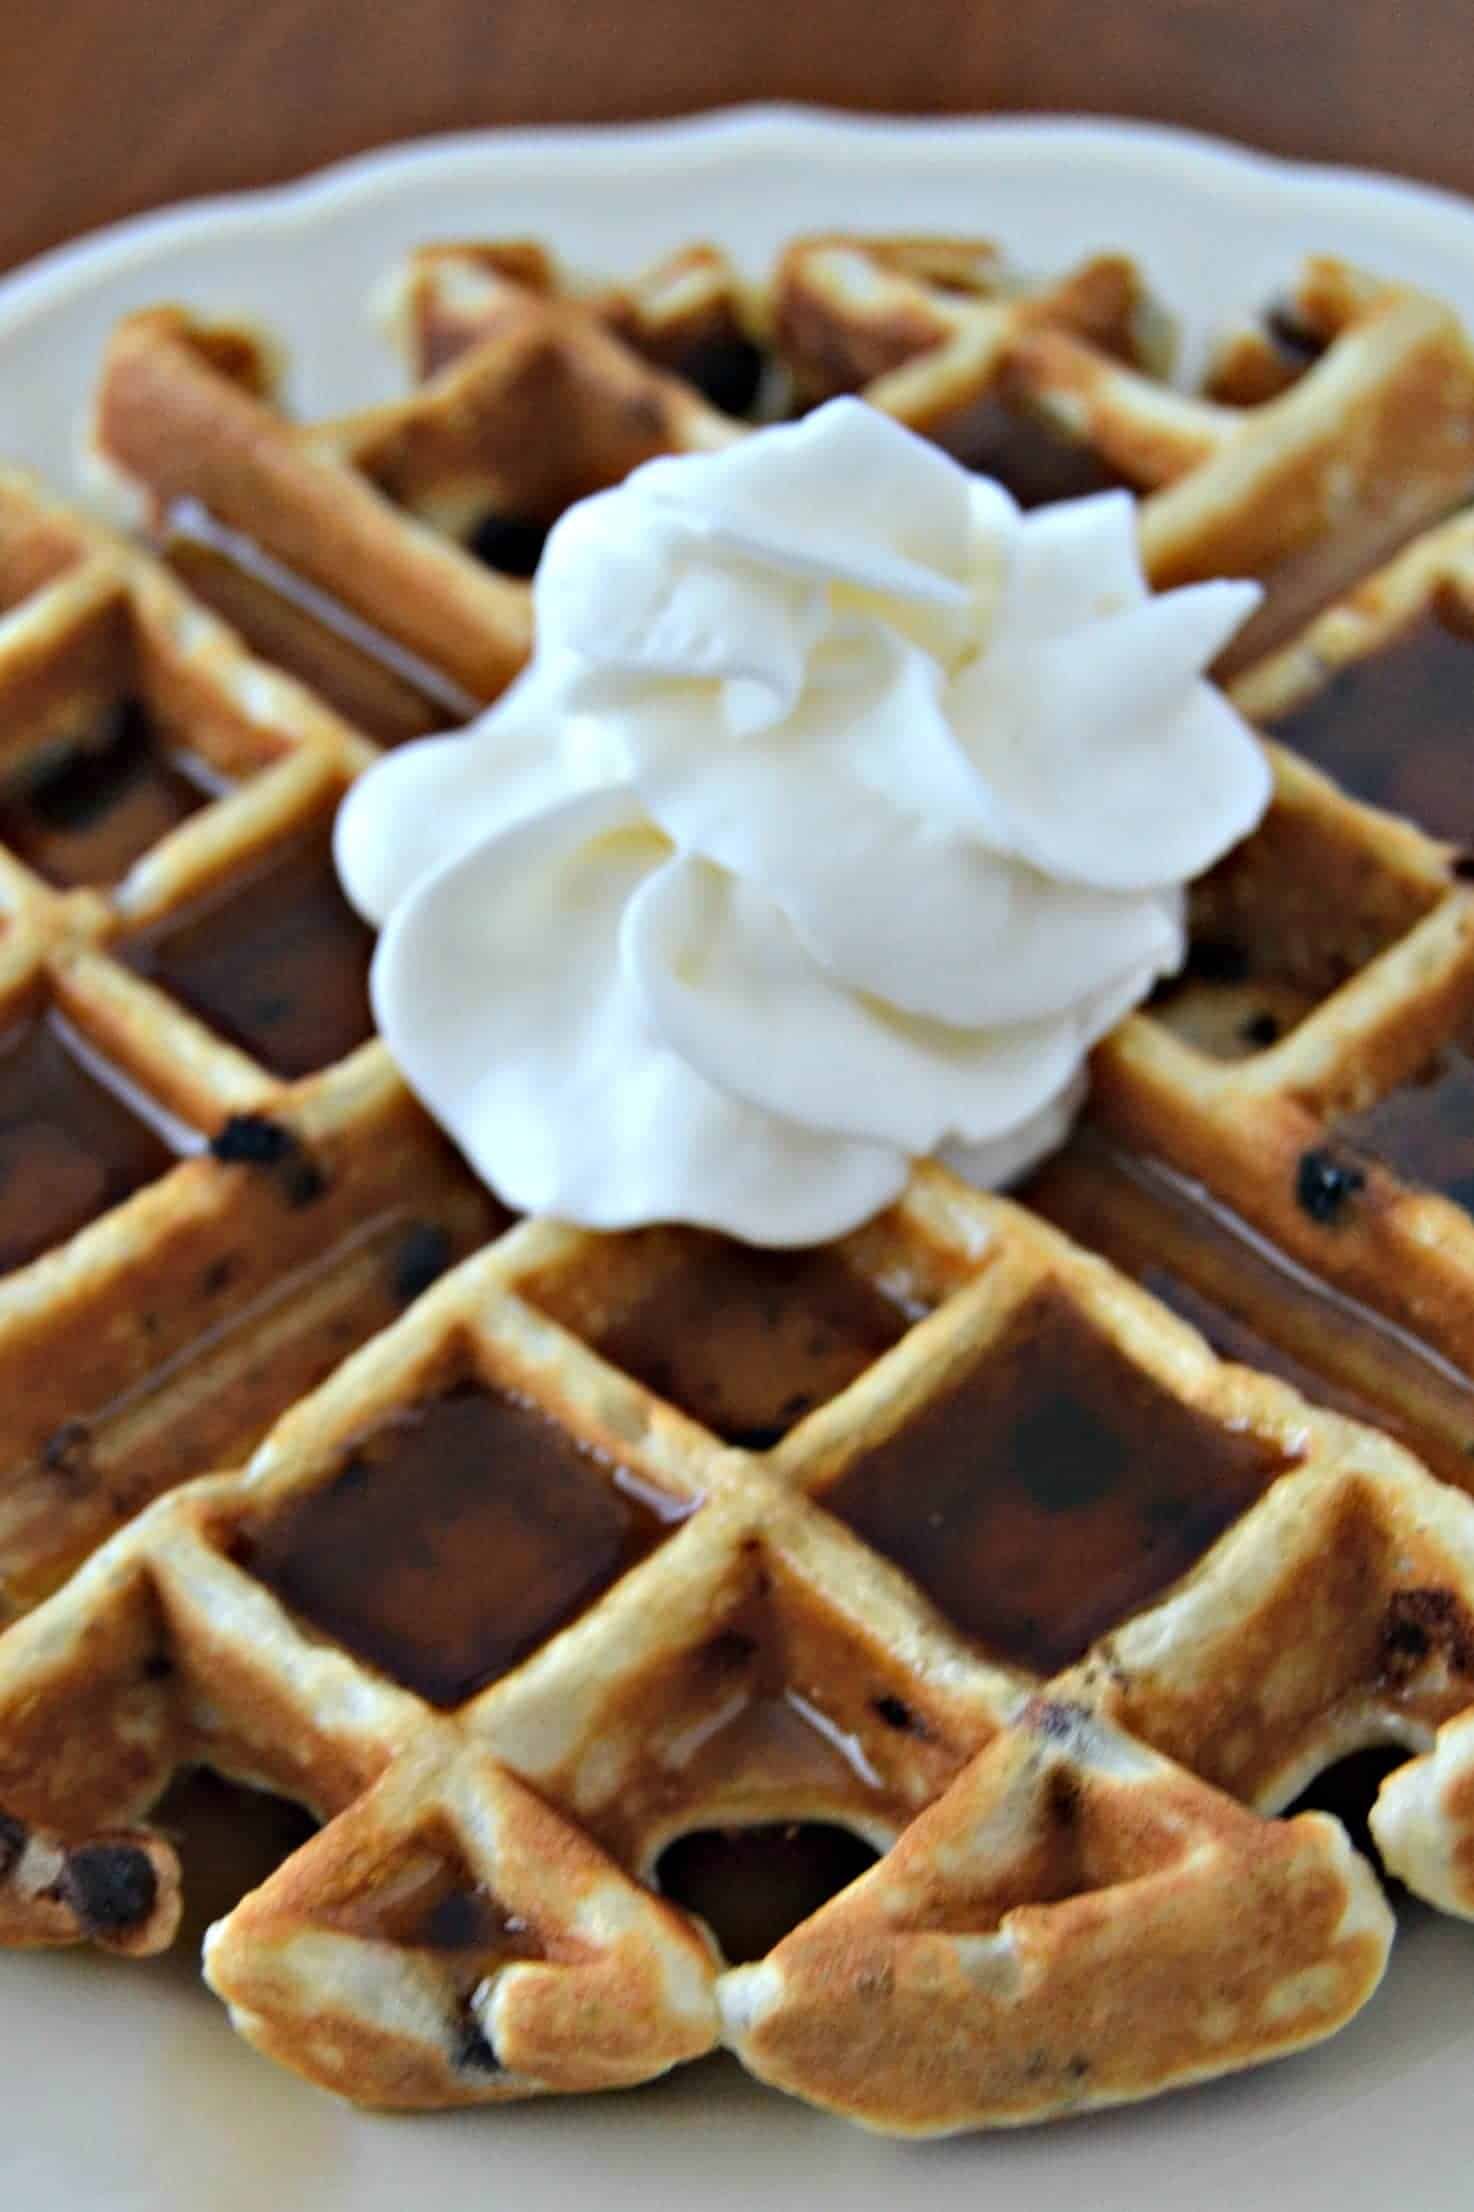 Chia Chocolate Chip Waffles with whipped cream